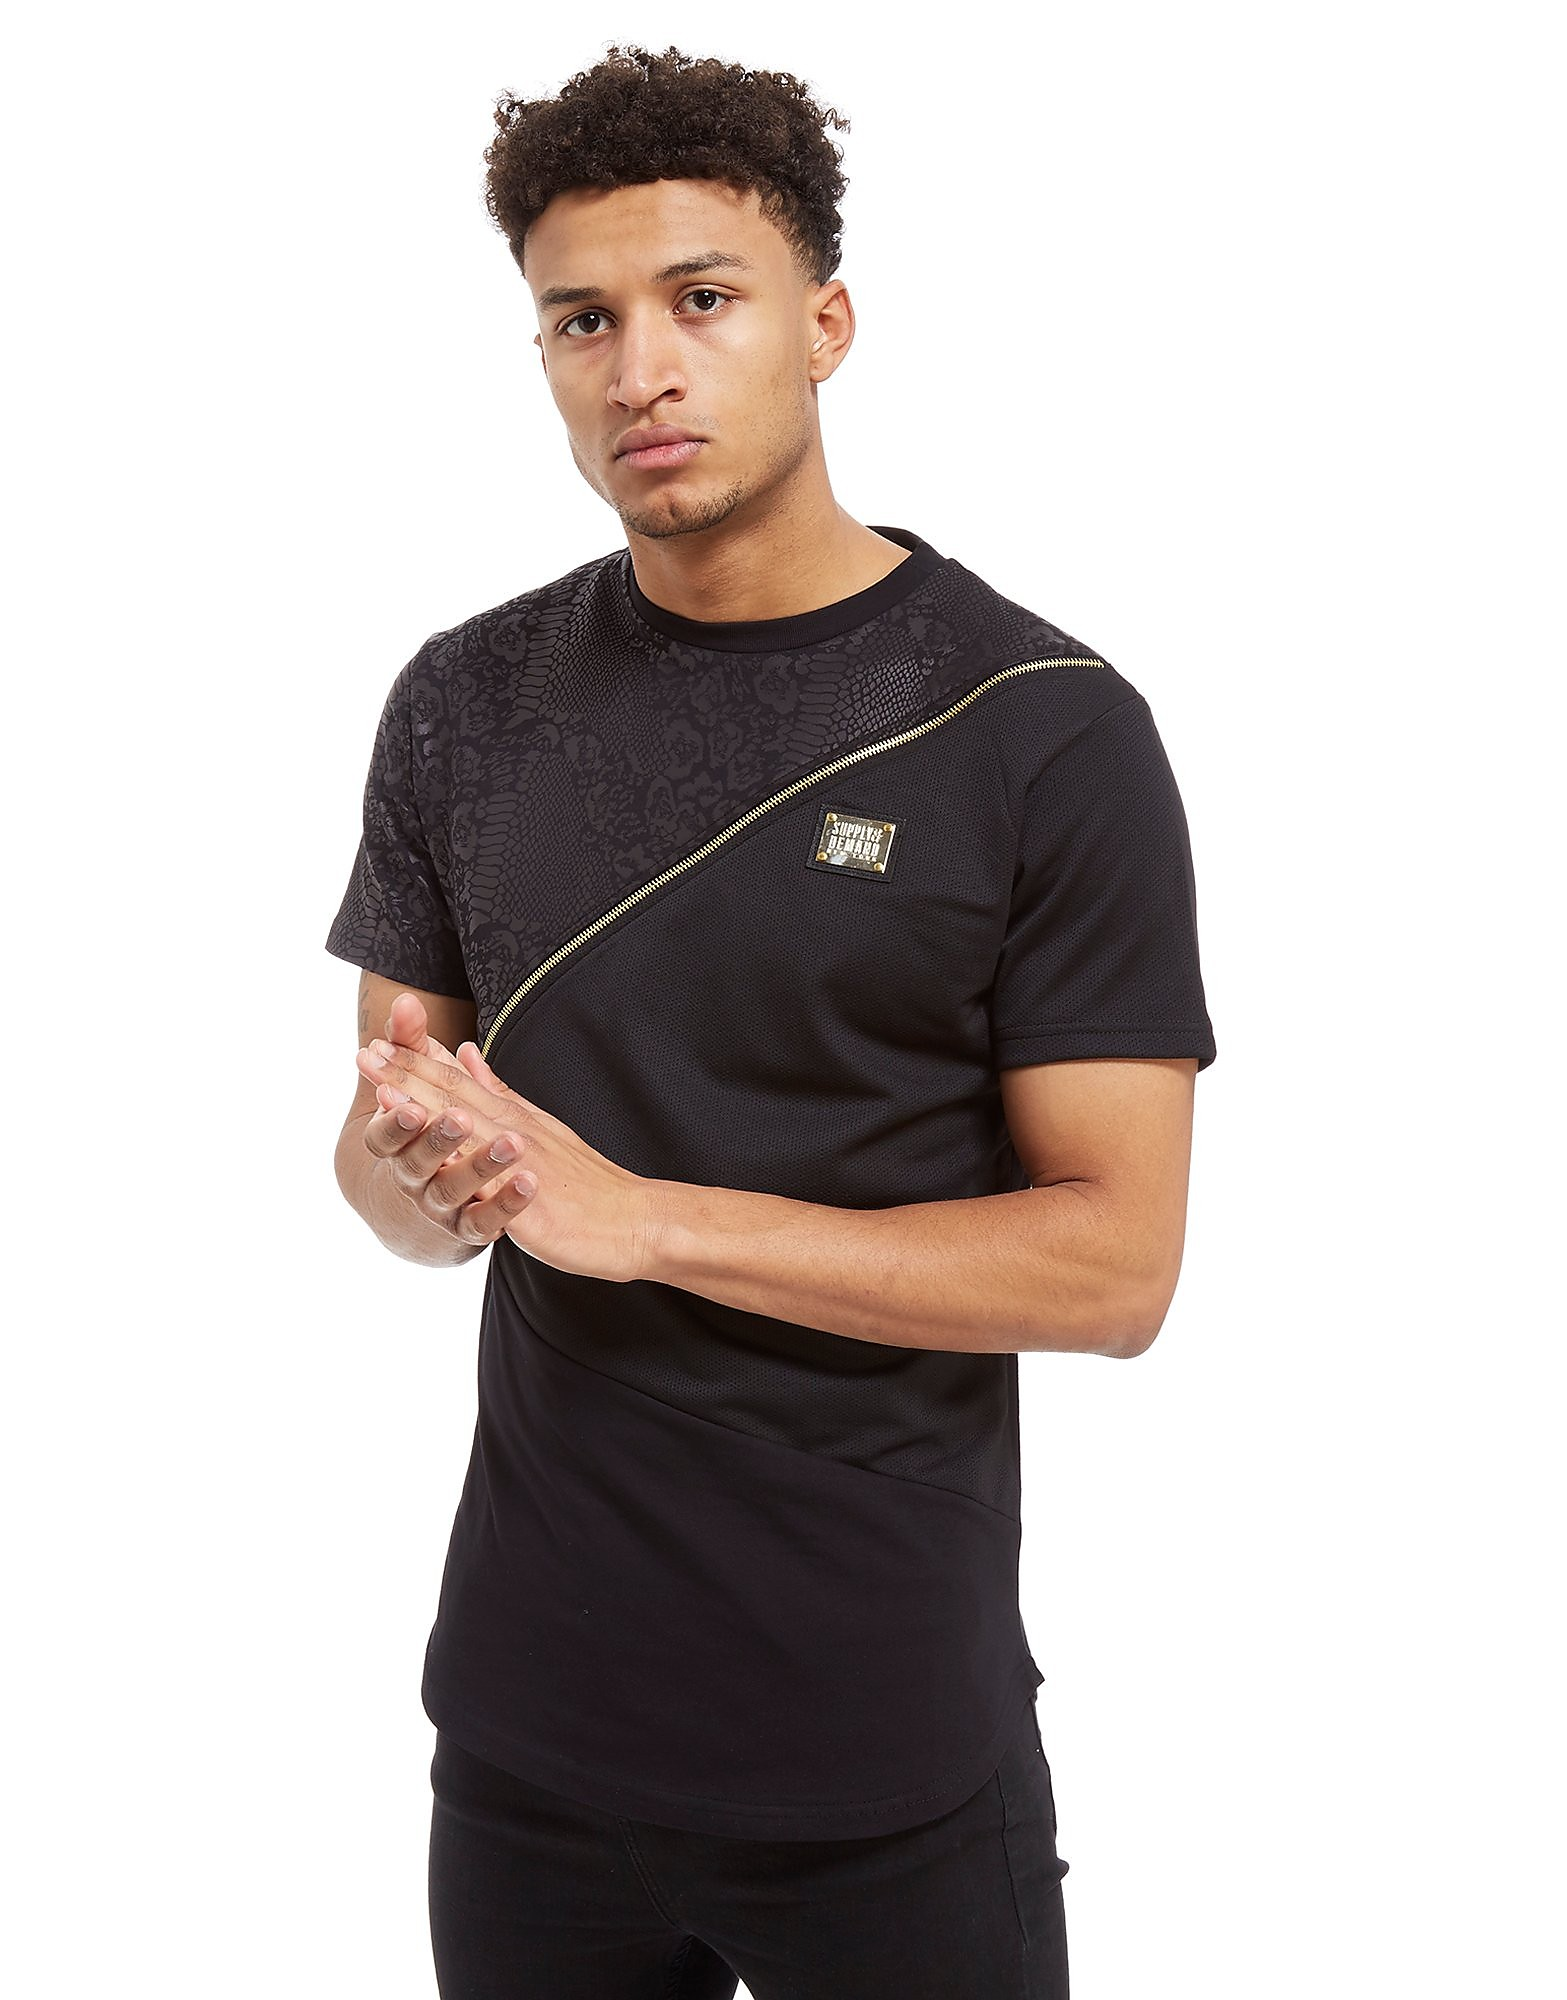 Supply & Demand Nove Slice Snake T-Shirt - Only at JD, Black